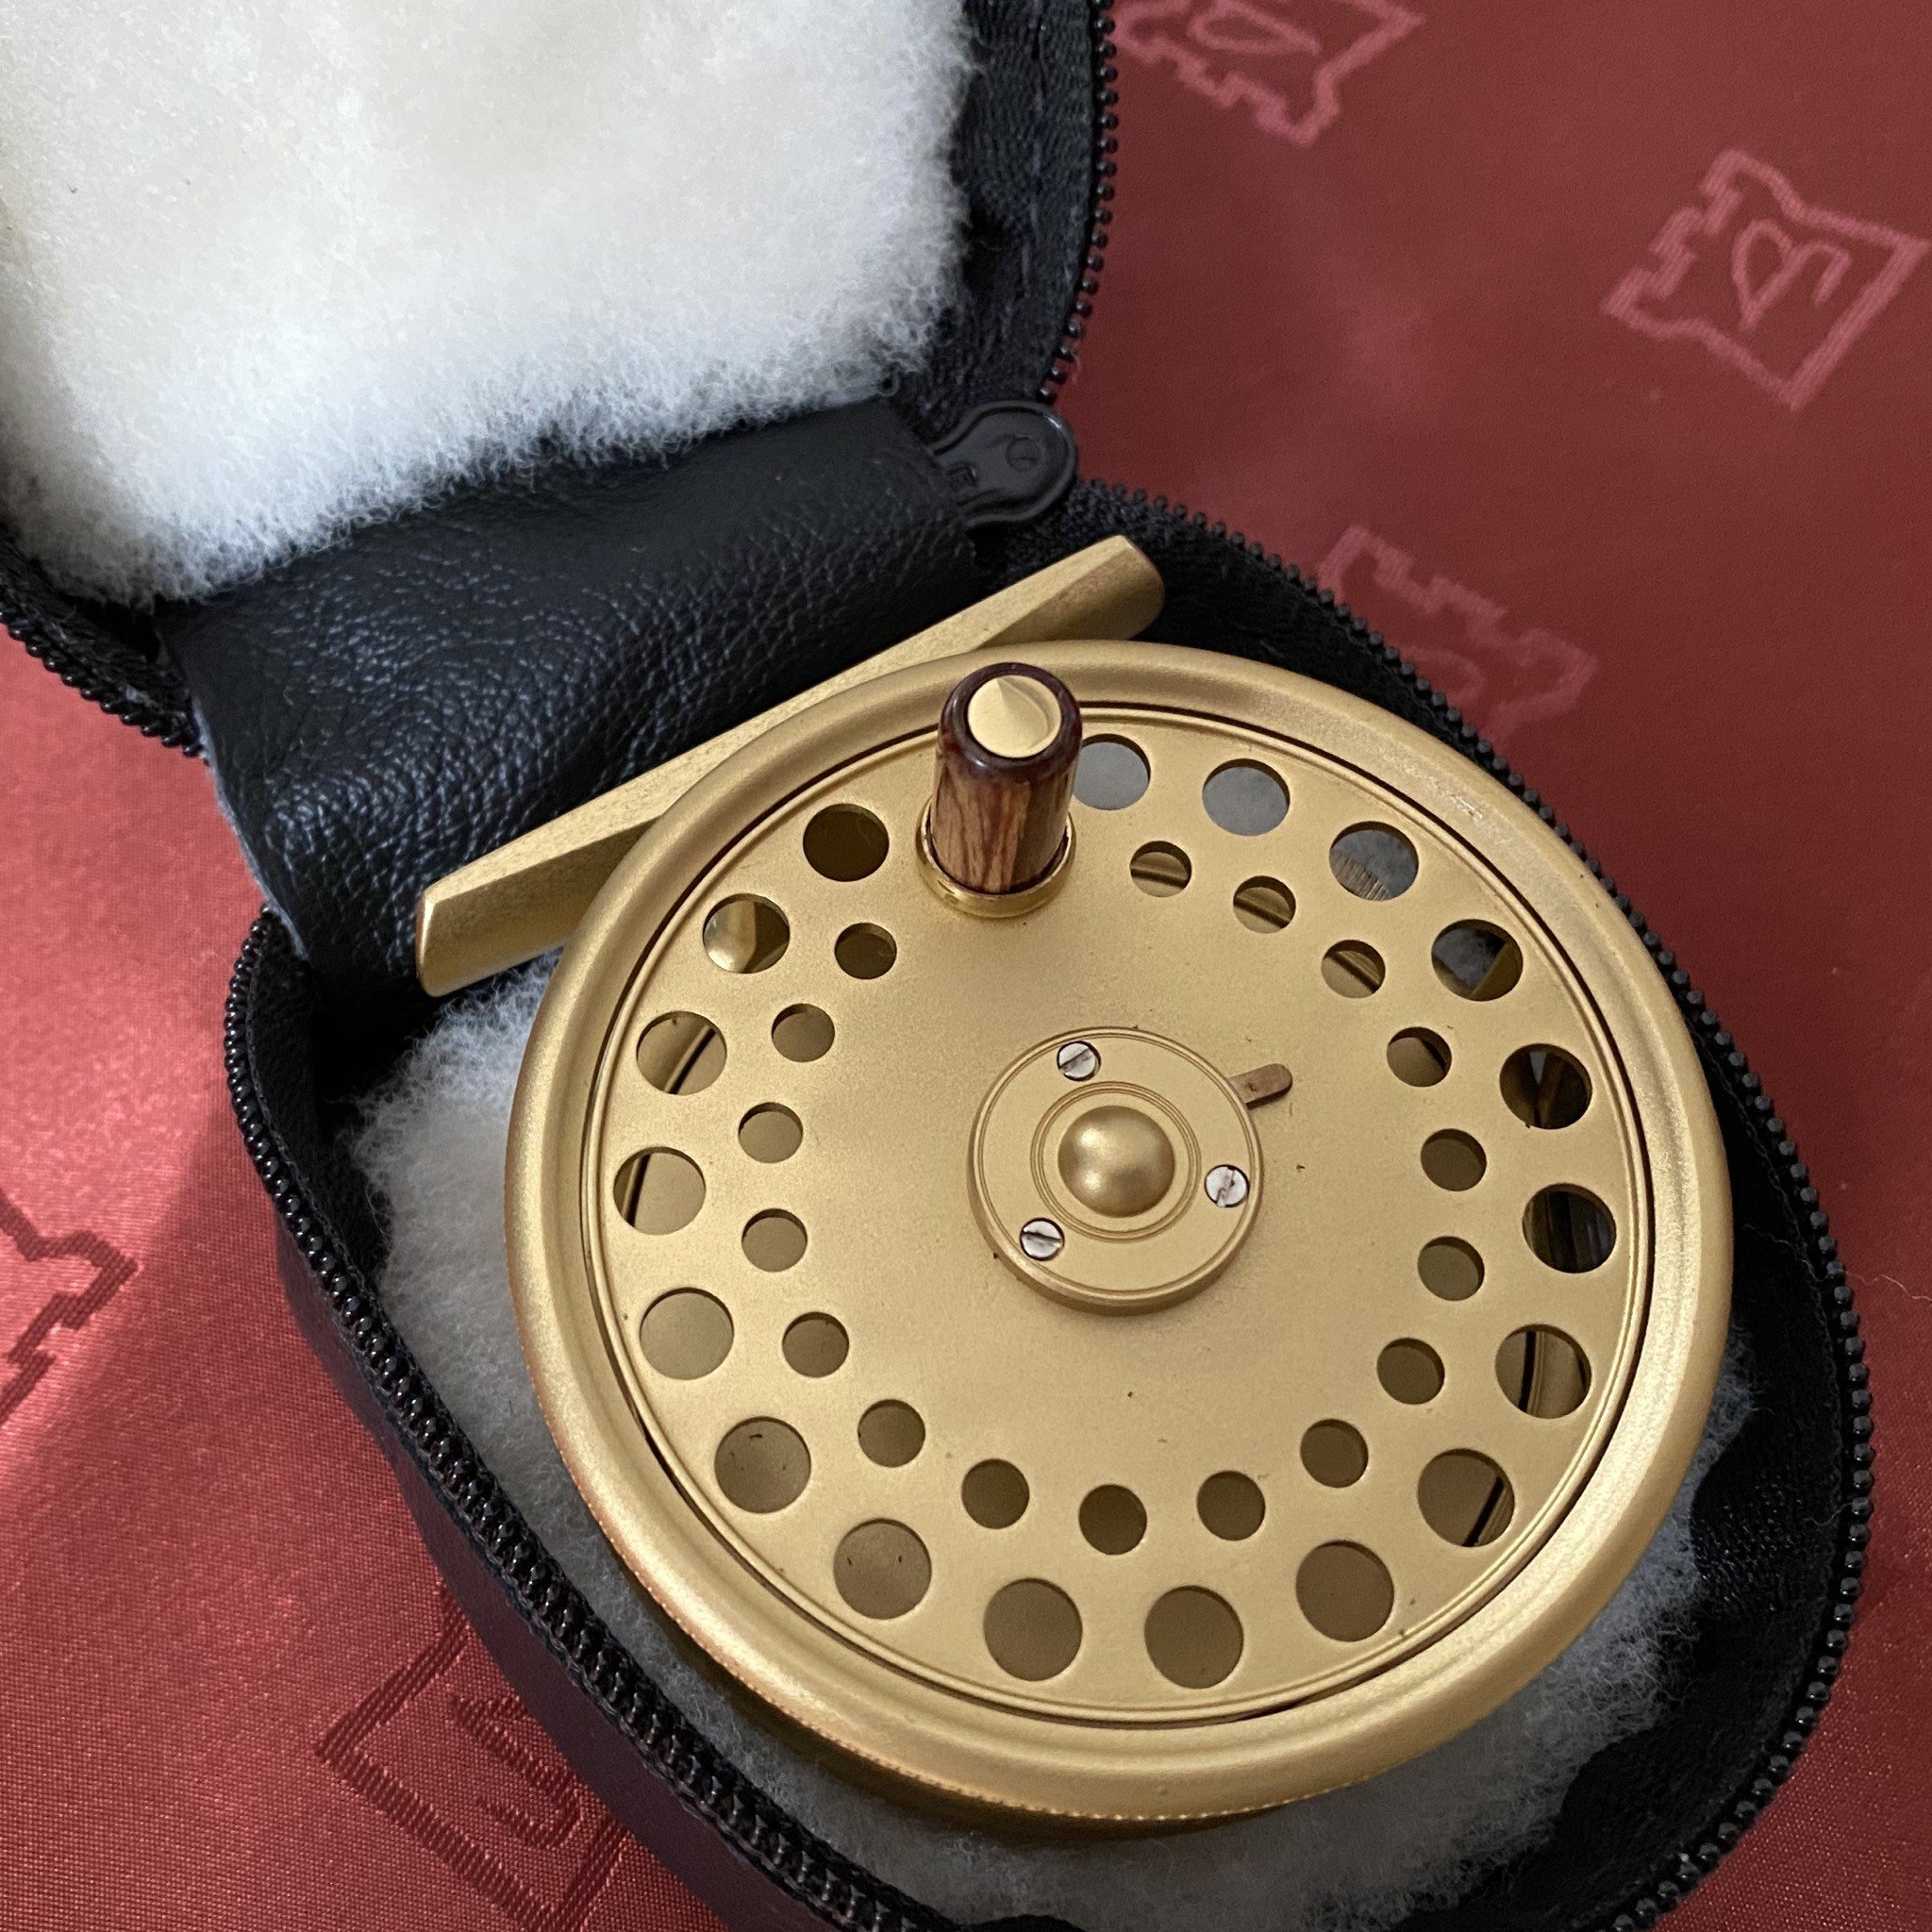 St. George The Royal Wedding Commemorative 3 inch Fly Reel MADE IN ENGLAND - LIMITED EDITION image 5